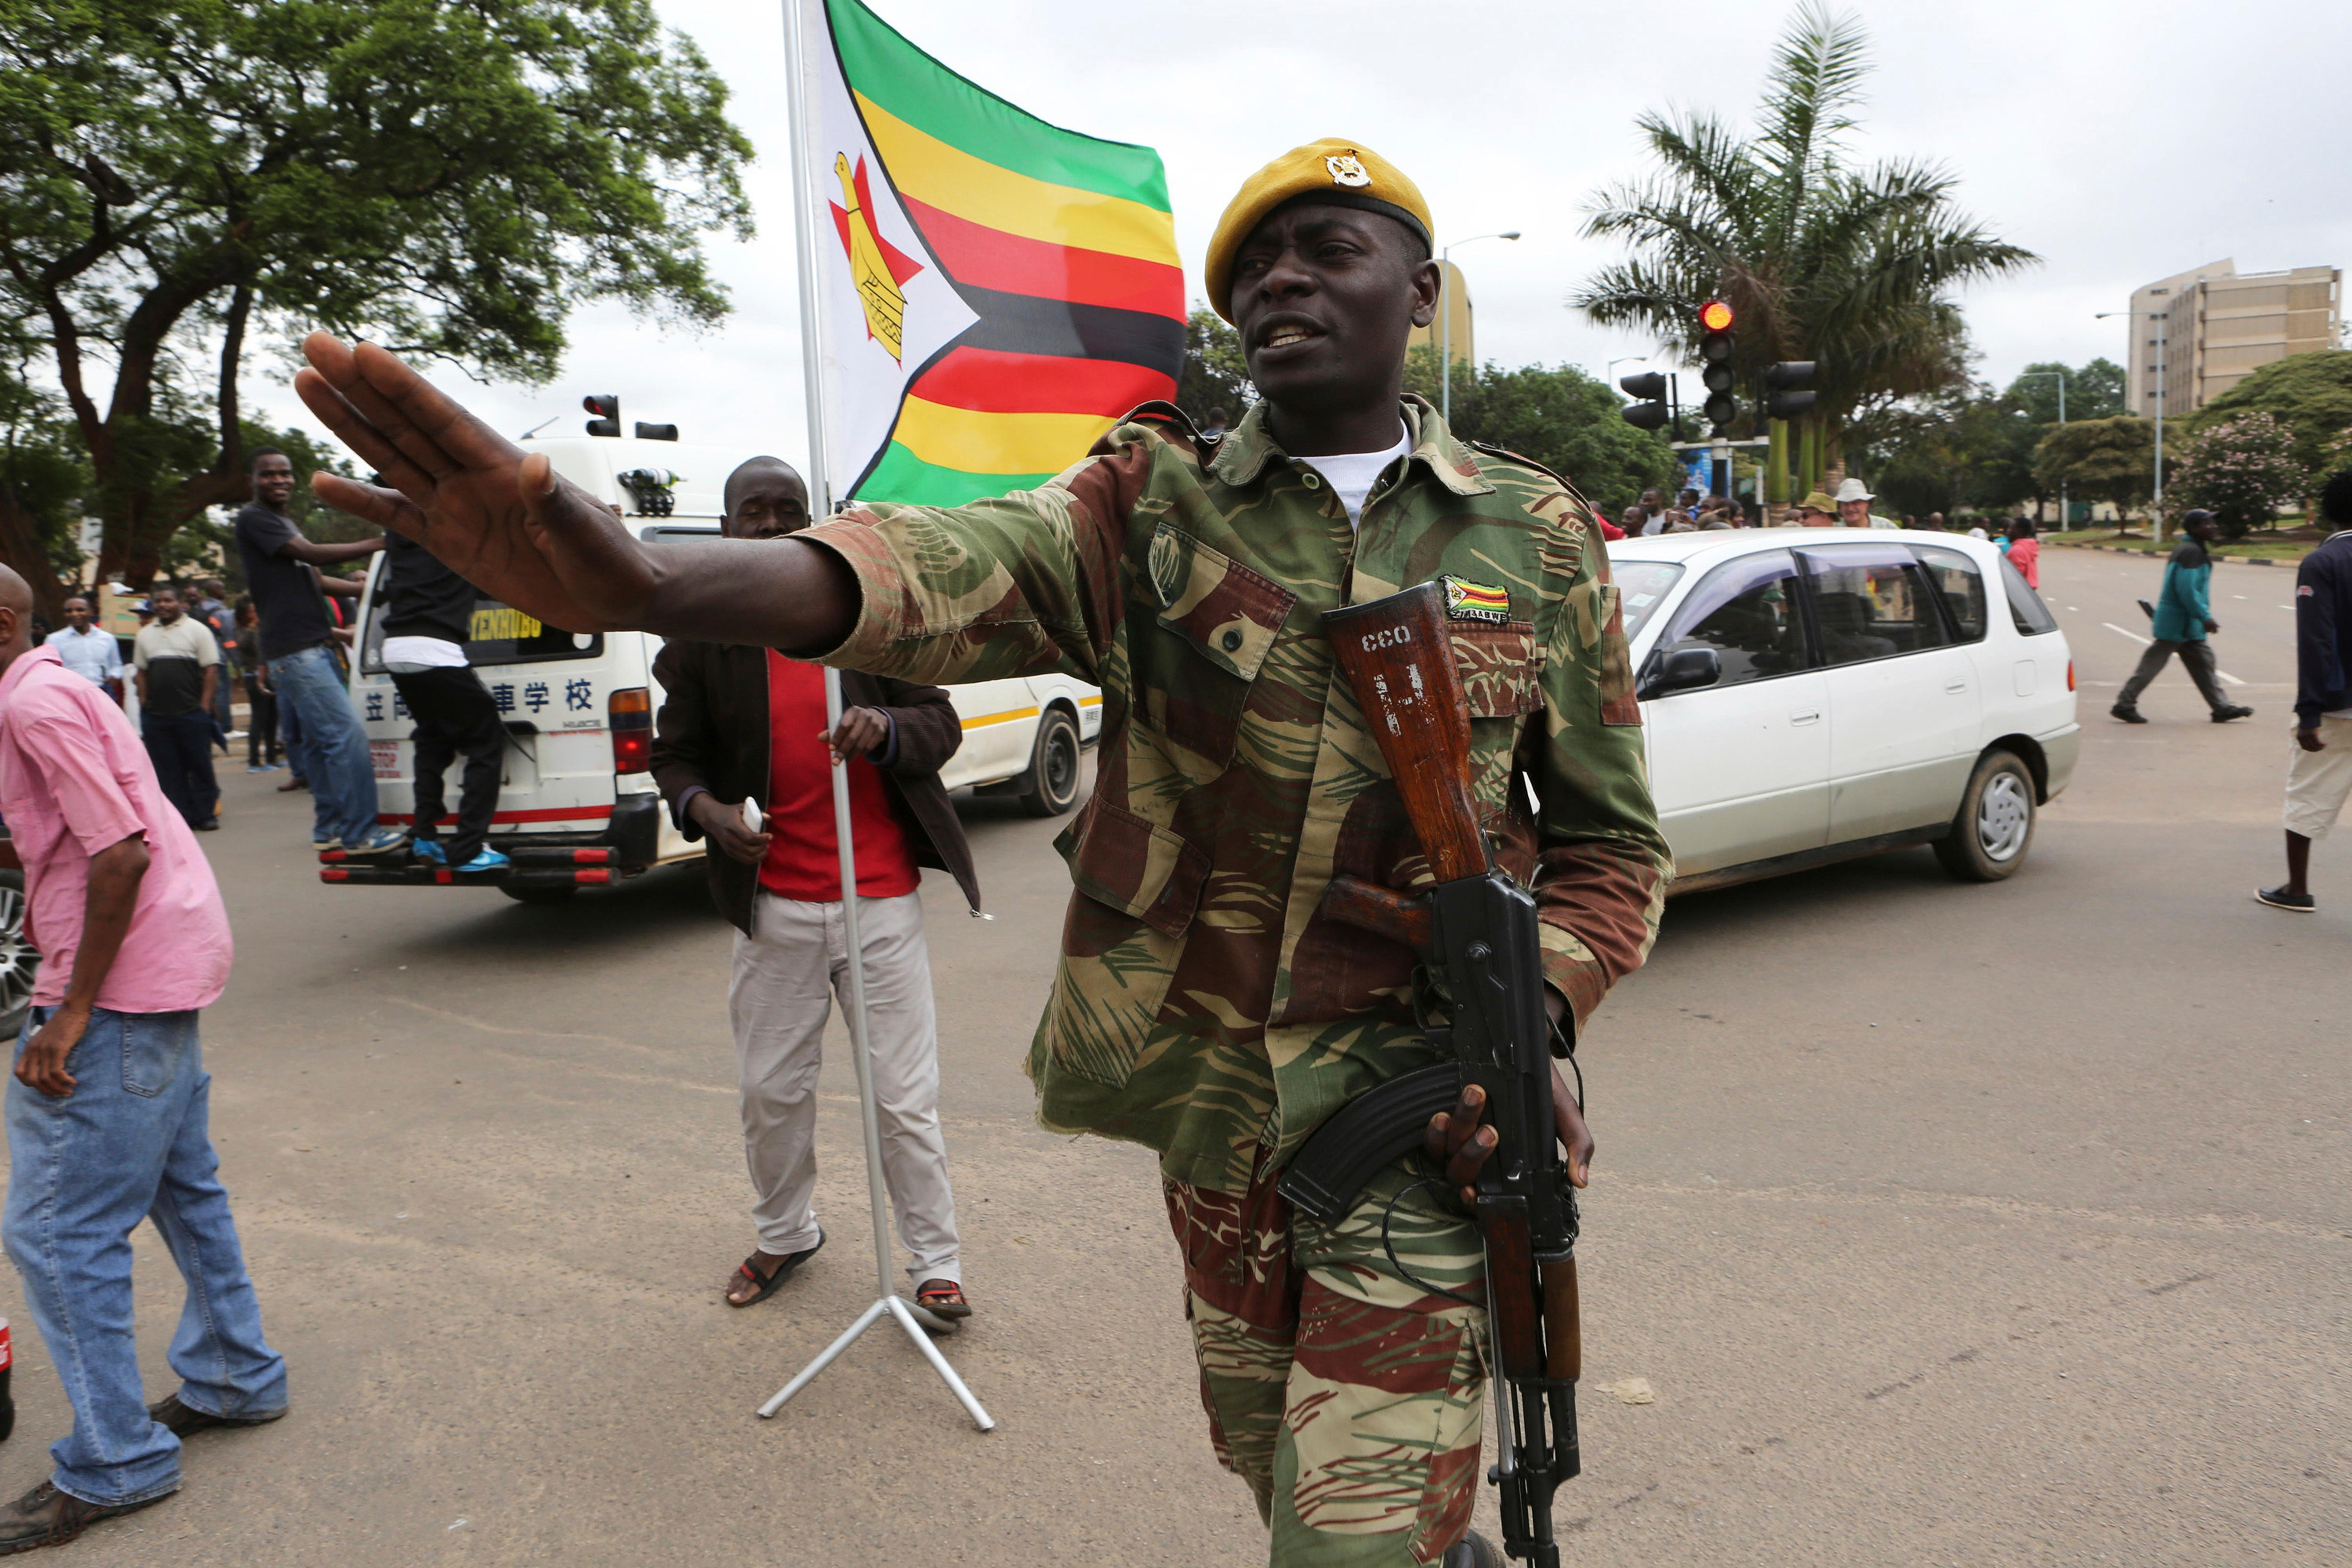 Armed soldiers control traffic as euphoric crowds march on the streets Saturday, Nov. 18, 2017, in Harare, Zimbabwe, demanding the departure of President Robert Mugabe. Zimbabweans giddy with joy raced through intersections, raising their arms in triumph. (AP Photo/Tsvangirayi Mukwazhi)